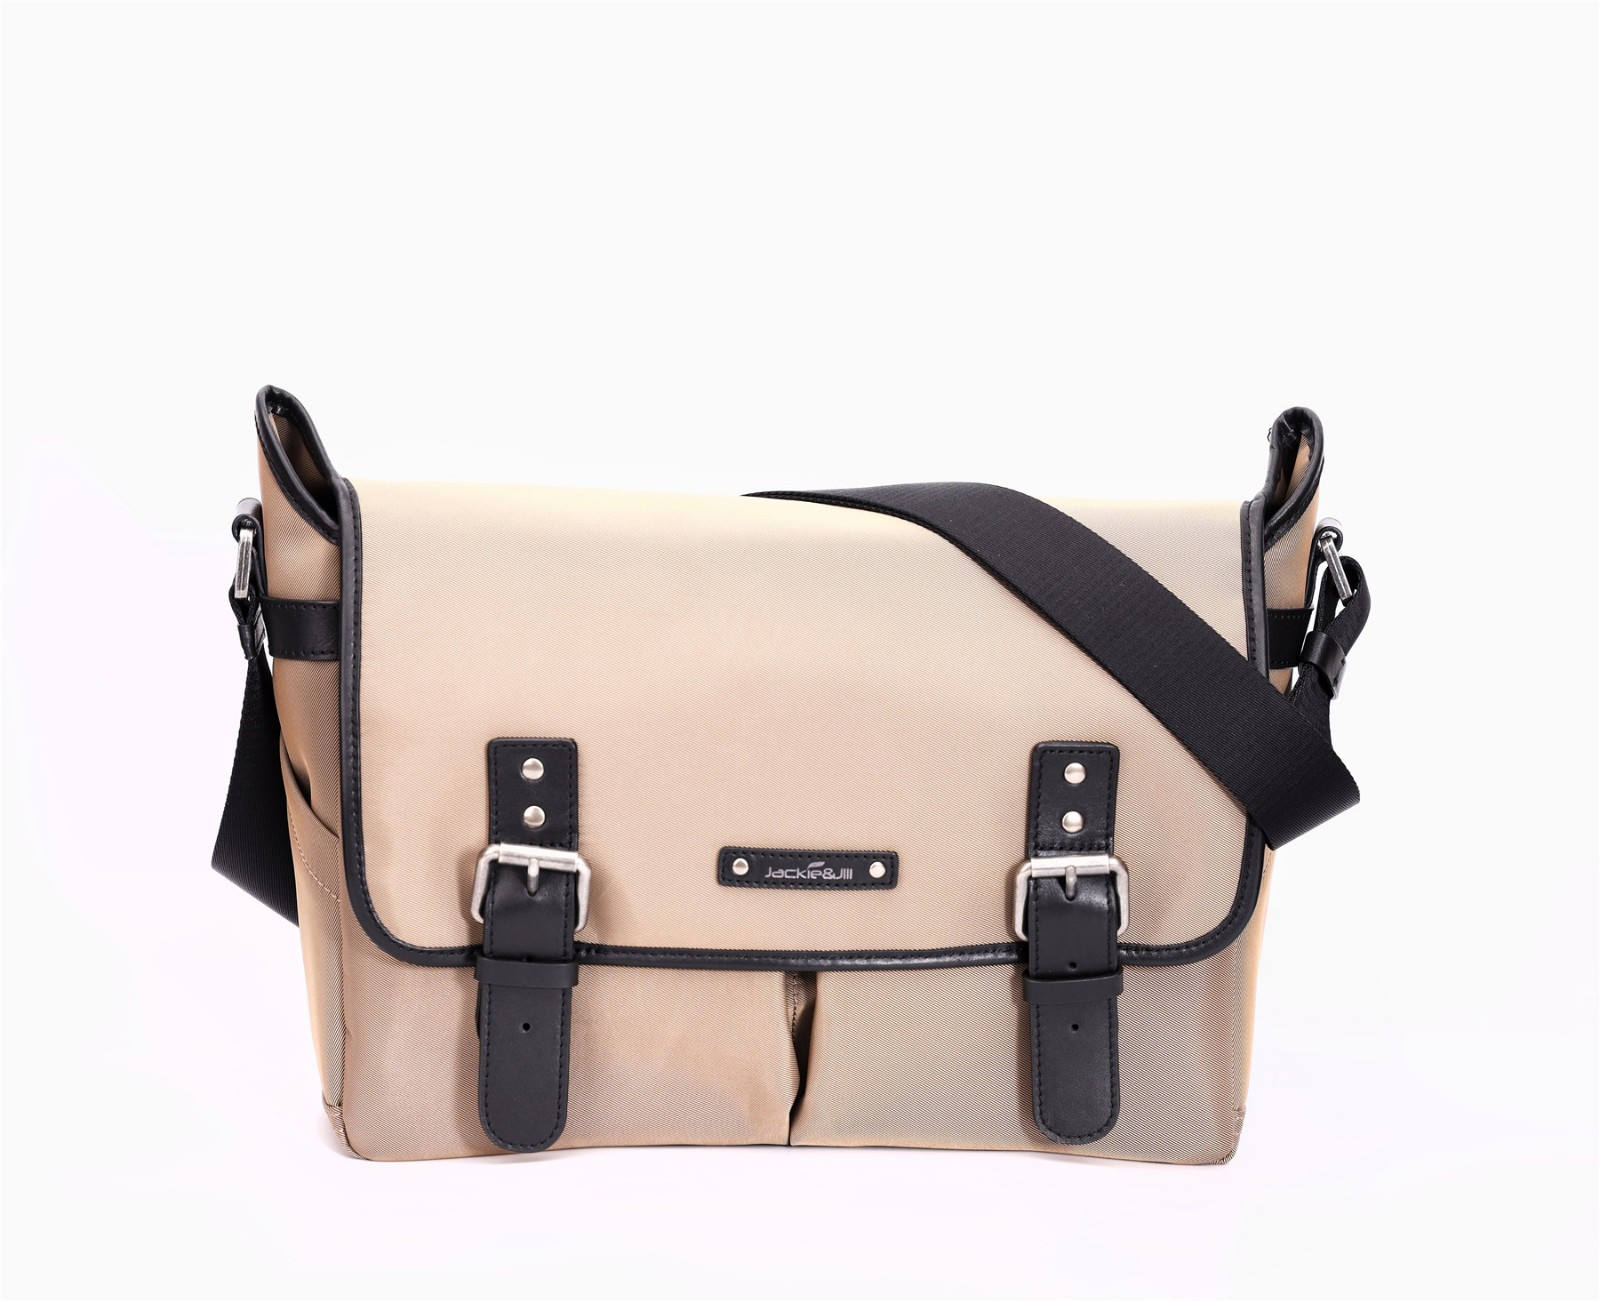 GF bags genuine leather male messenger bags for girls-5